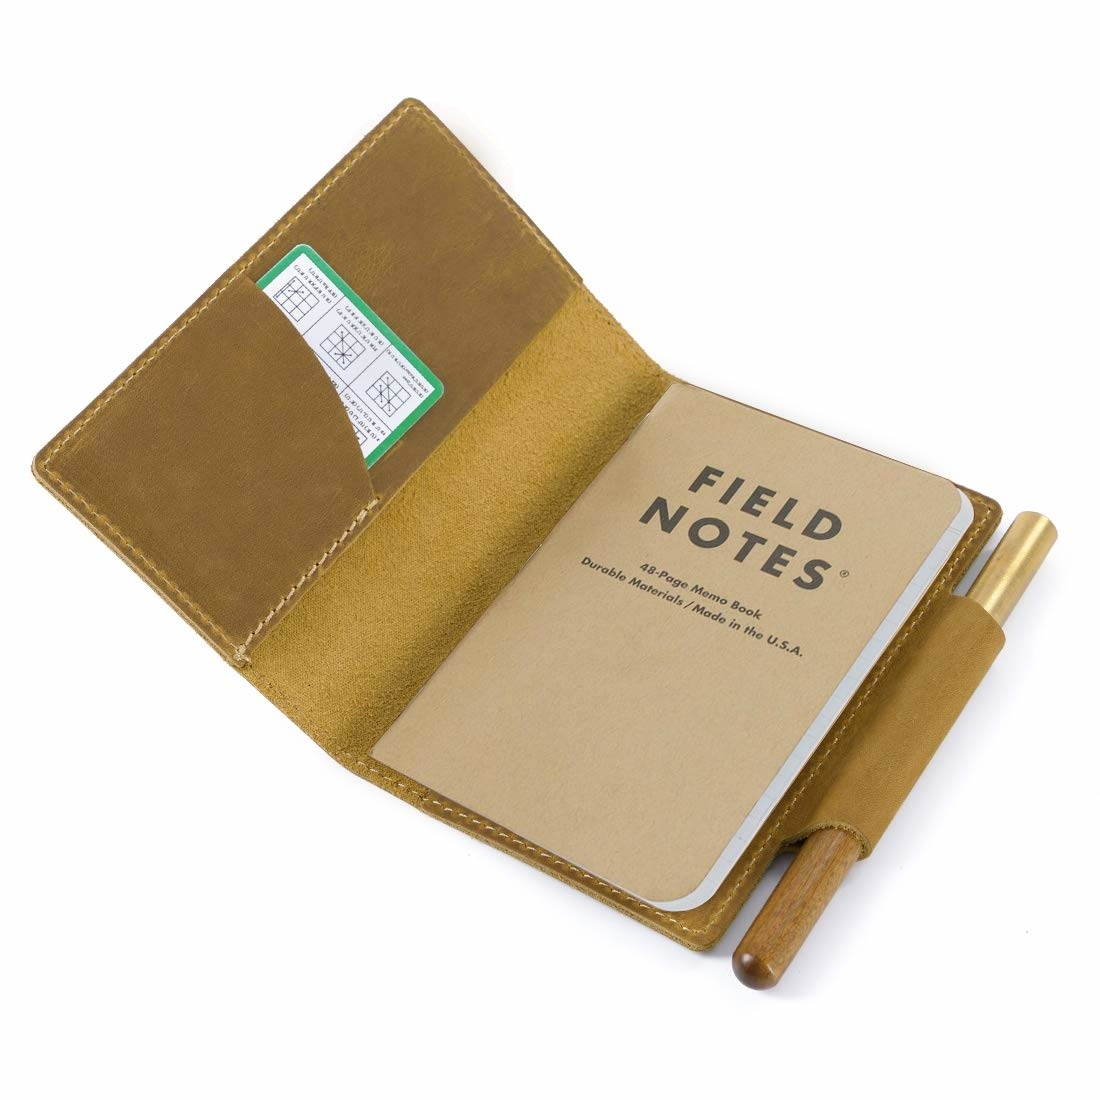 100% Genuine Leather Notebook Cover For Field Notes Vintage Refillable Handmade Diary Journal Carry Memo Book With Card Holder